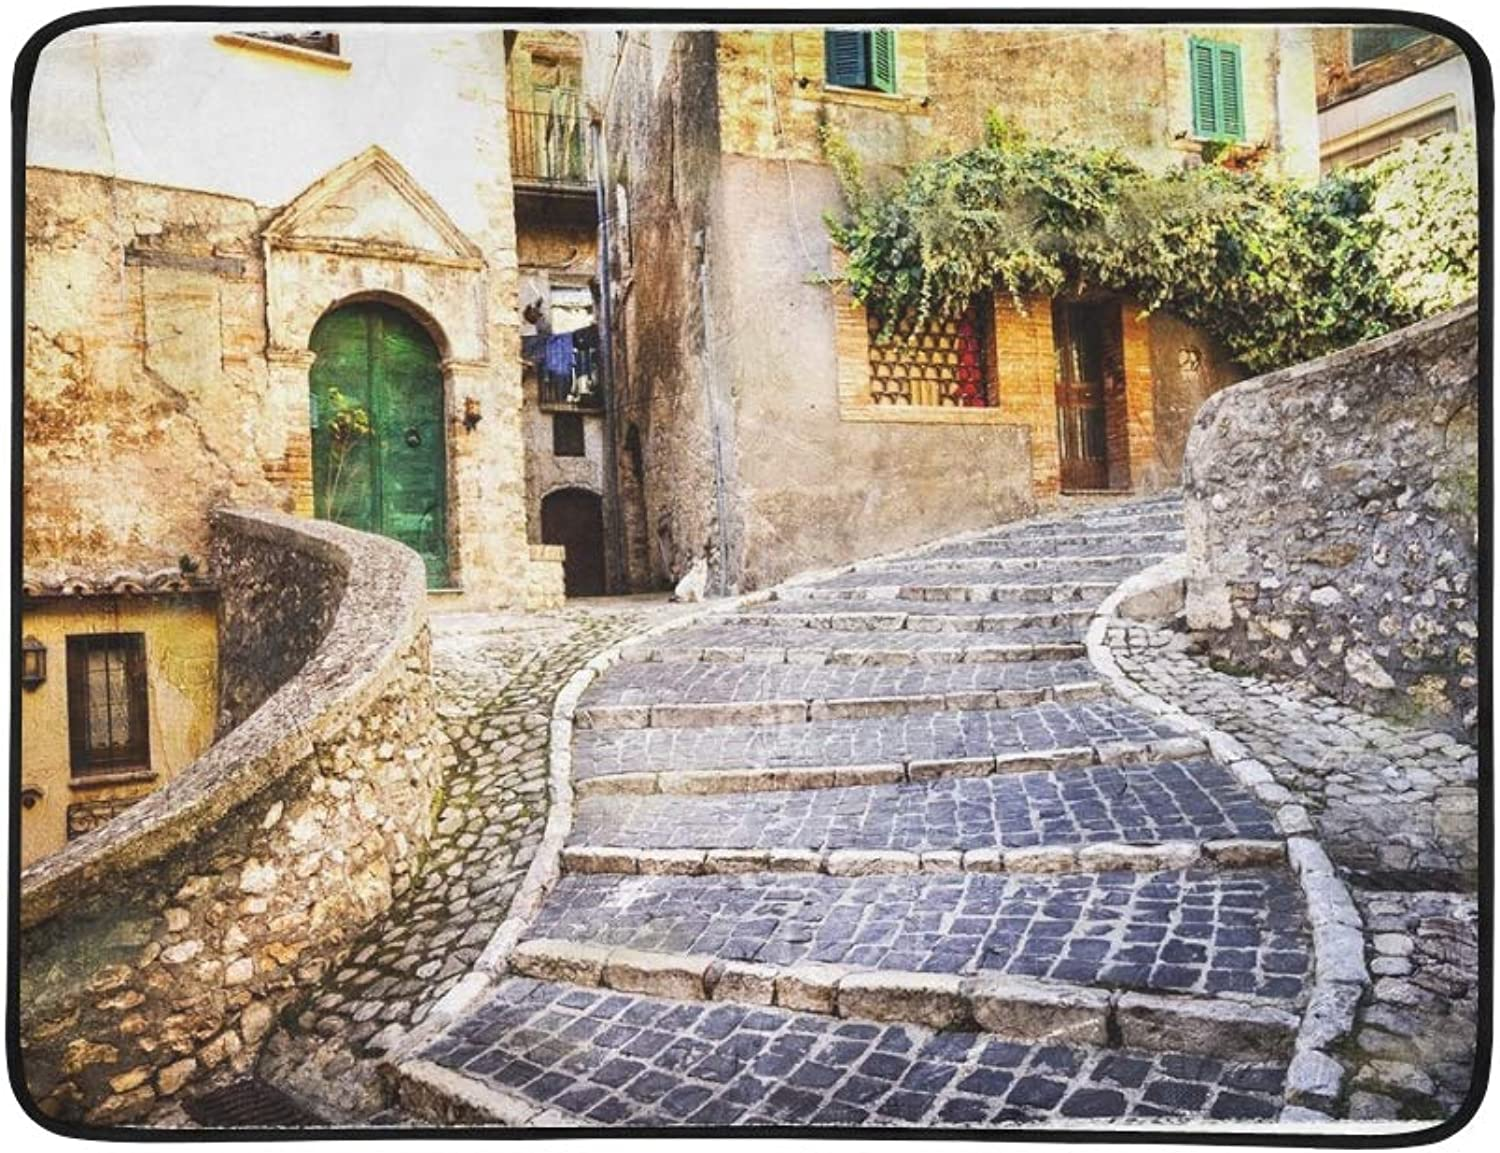 Pictorial Old Streets Italian Villages Artistic Portable and Foldable Blanket Mat 60x78 Inch Handy Mat for Camping Picnic Beach Indoor Outdoor Travel